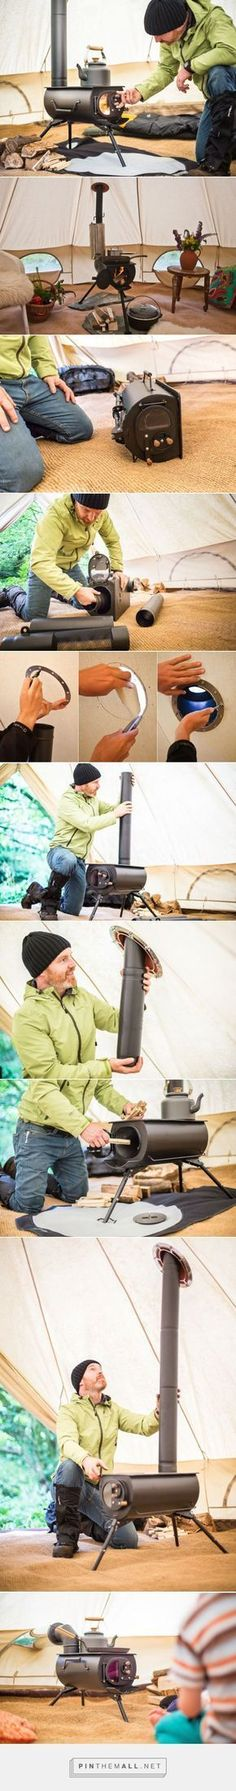 Portable Woodburning Stove Can Be Installed in Tents Teepees or Small Cabins. Portable Woodburning Stove Can Be Installed in Tents Teepees or Small Cabins. Zelt Camping, Camping Diy, Camping Survival, Camping Gear, Camping Hacks, Outdoor Camping, Backpacking, Camping Essentials, Bushcraft Camping